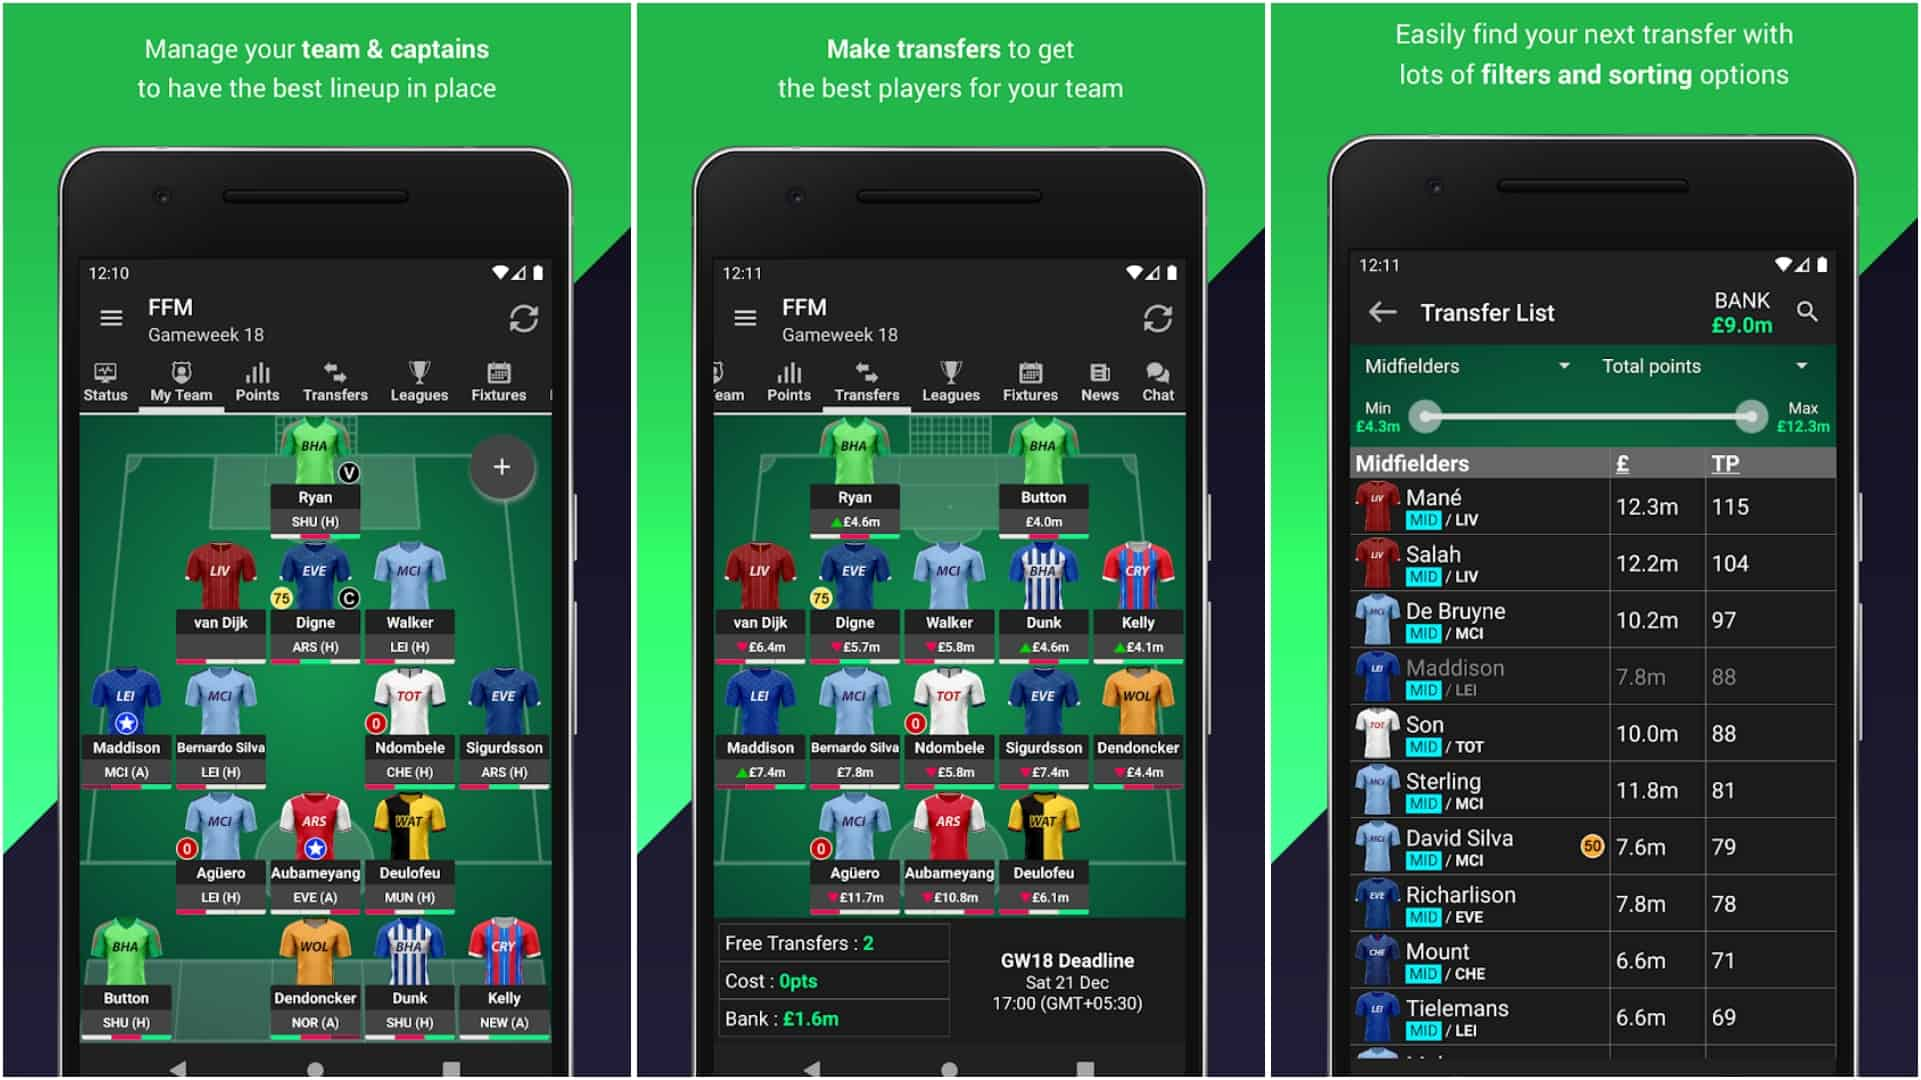 Fantasy Football Manager for Premier League FPL app image July 2020